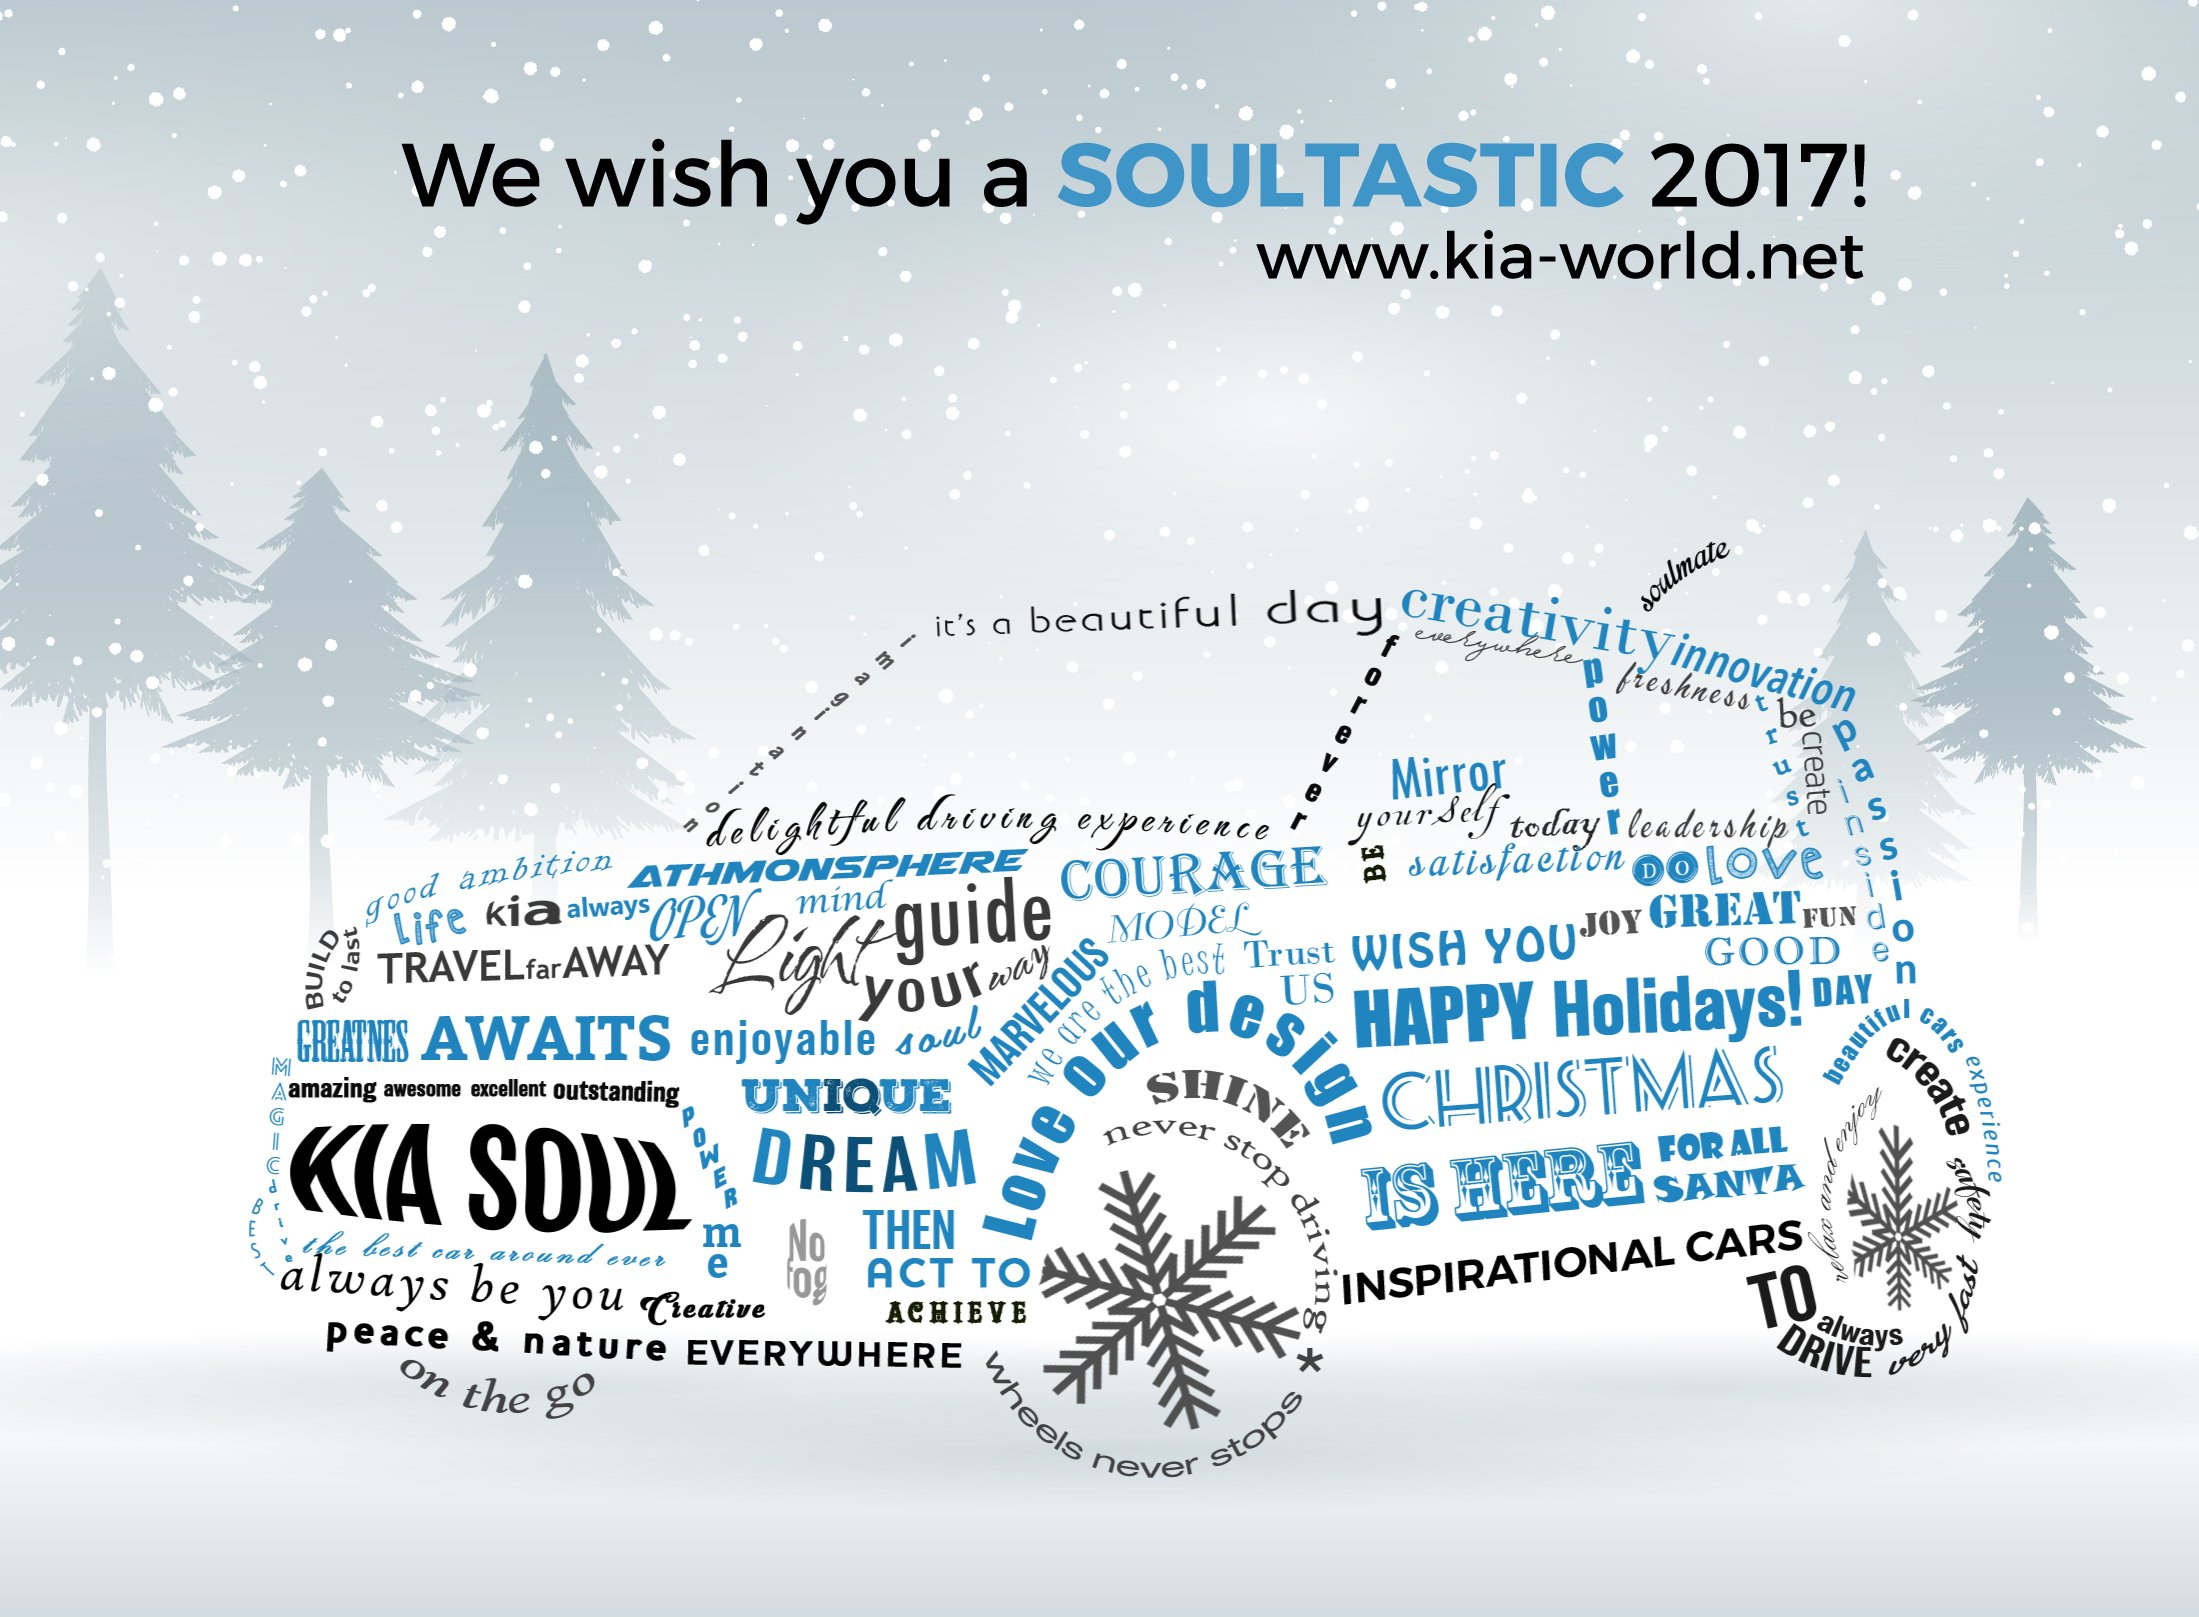 Kia-World Wishes You All A Happy New Year | Kia News Blog